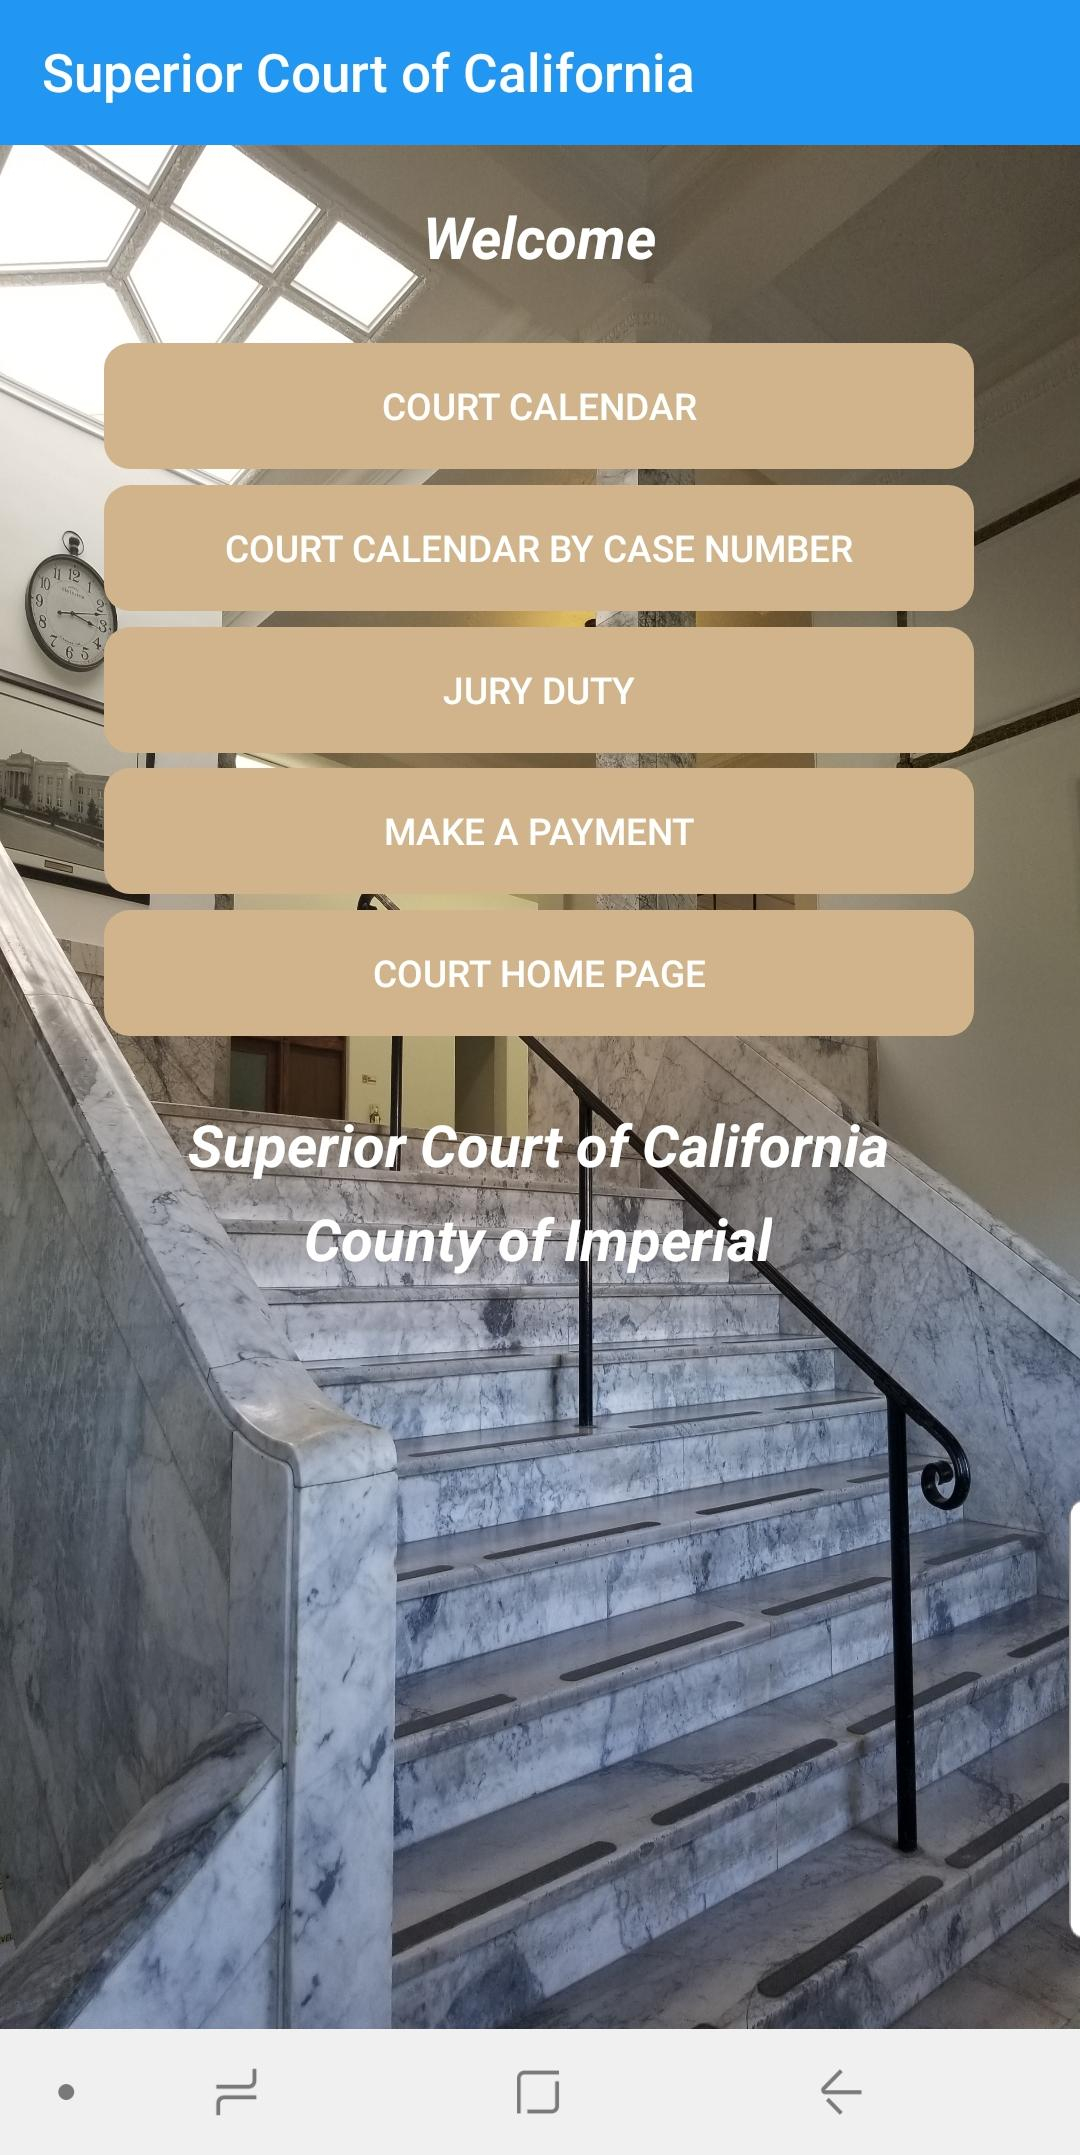 Superior Court Of Ca Imperial Для Андроид - Скачать Apk intended for Impeiral County Superior Court Calendar